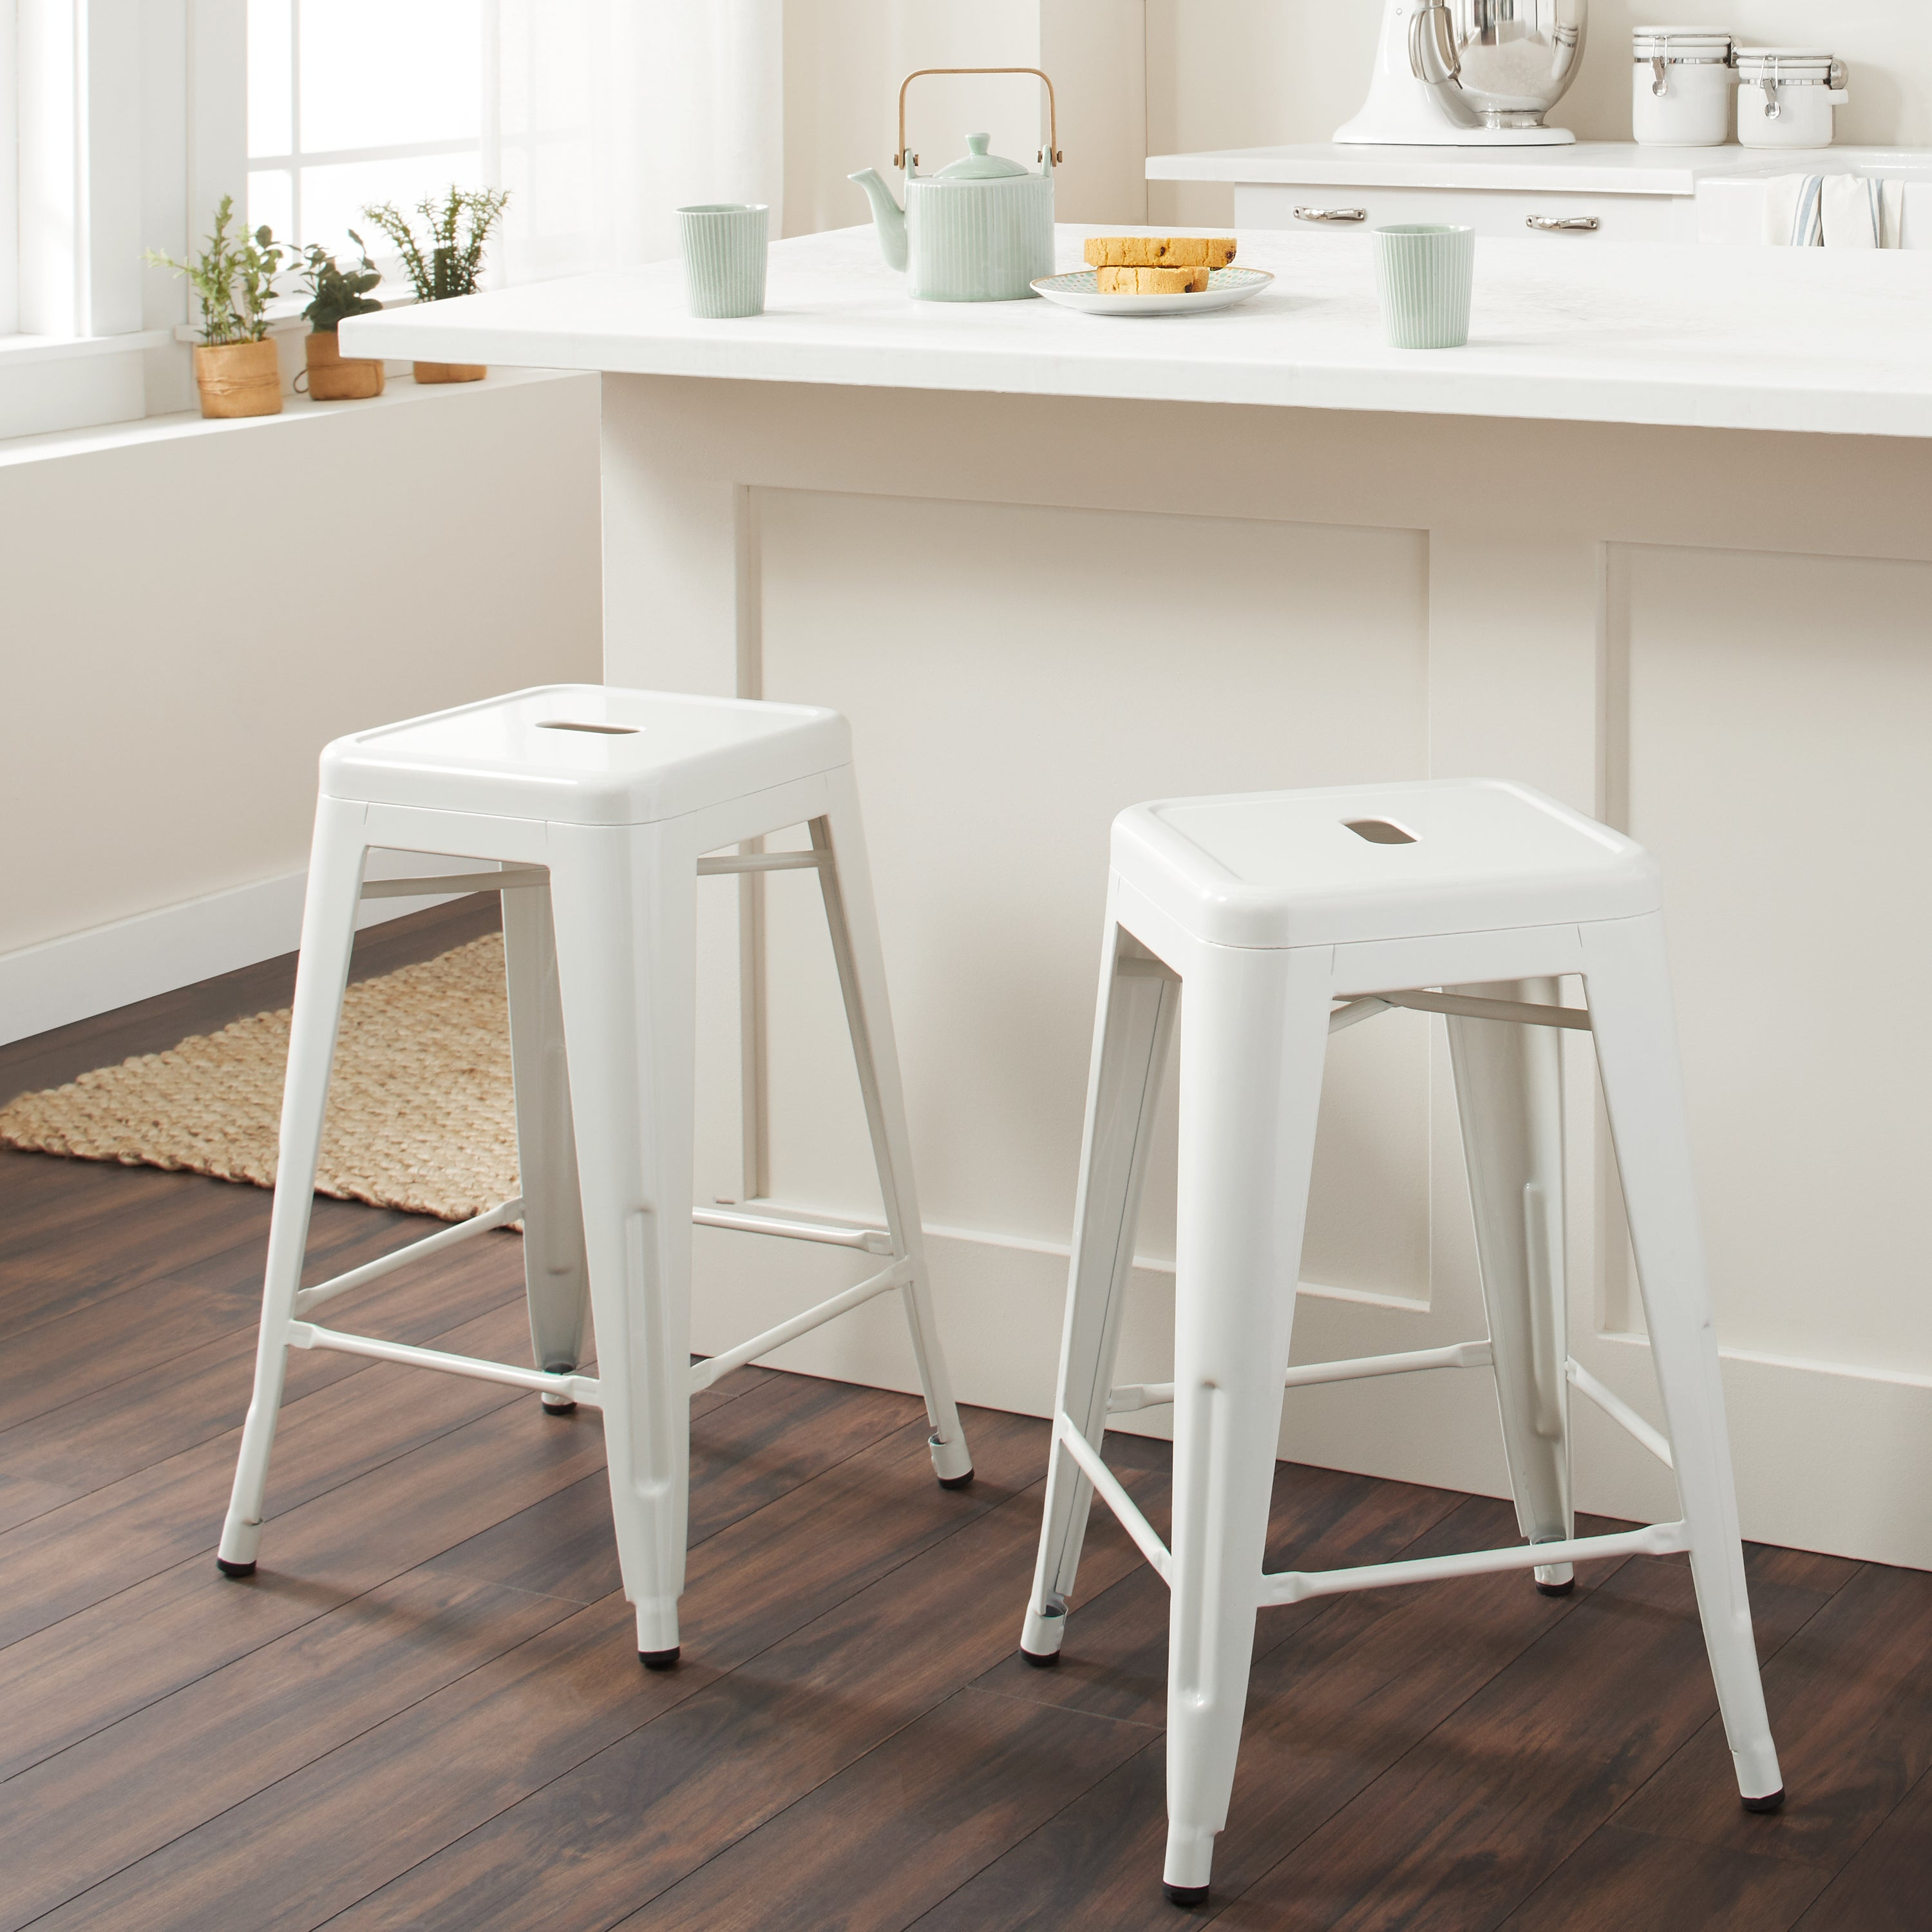 Shop tabouret 24 inch white metal counter stools set of 2 free shipping today overstock com 5095628